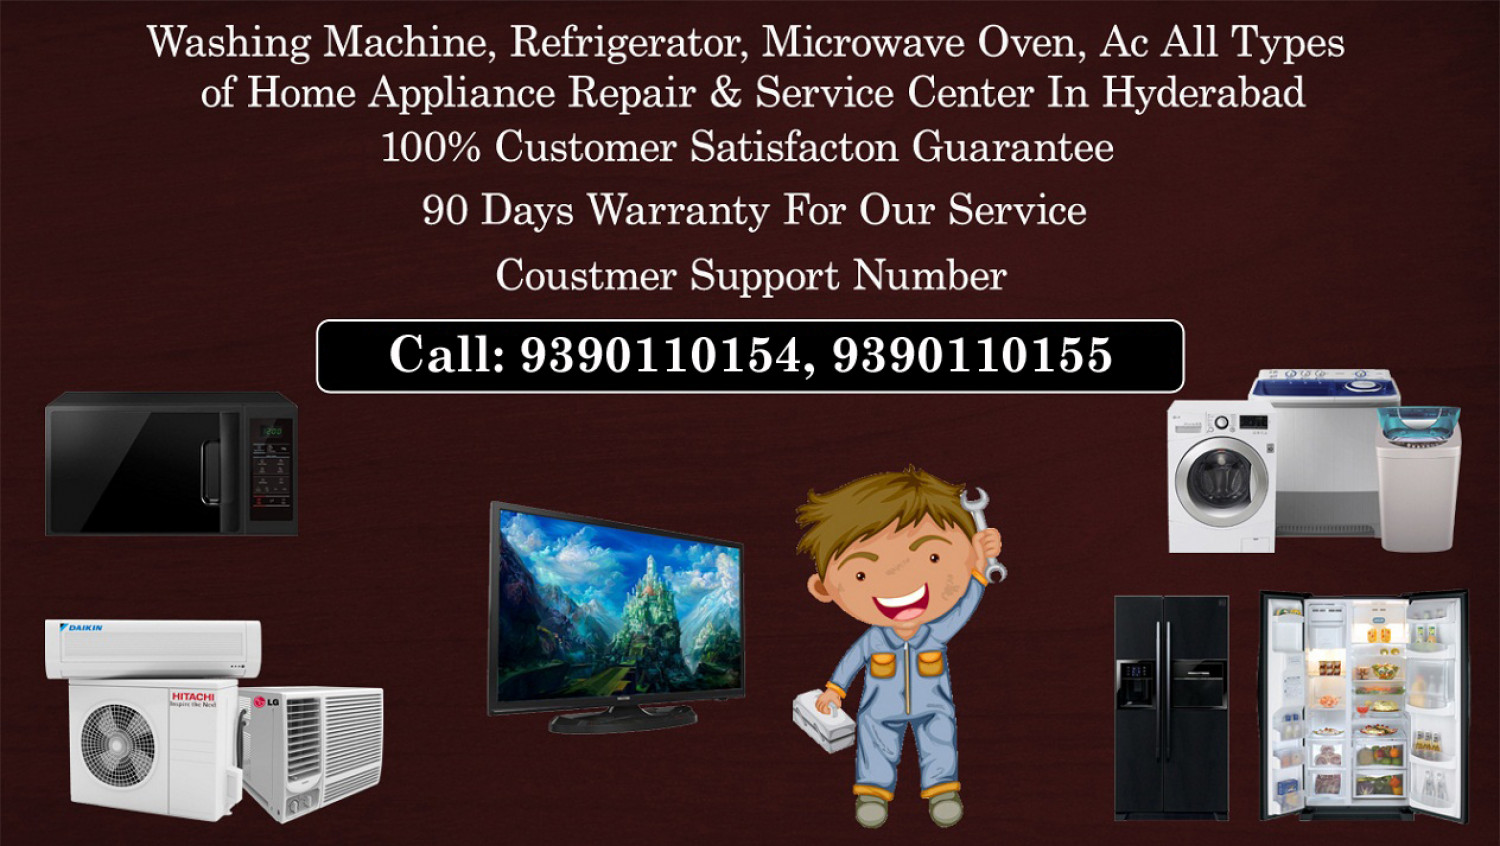 IFB WASHING MACHINE SERVICE CENTRE IN HYDERABAD Infographic